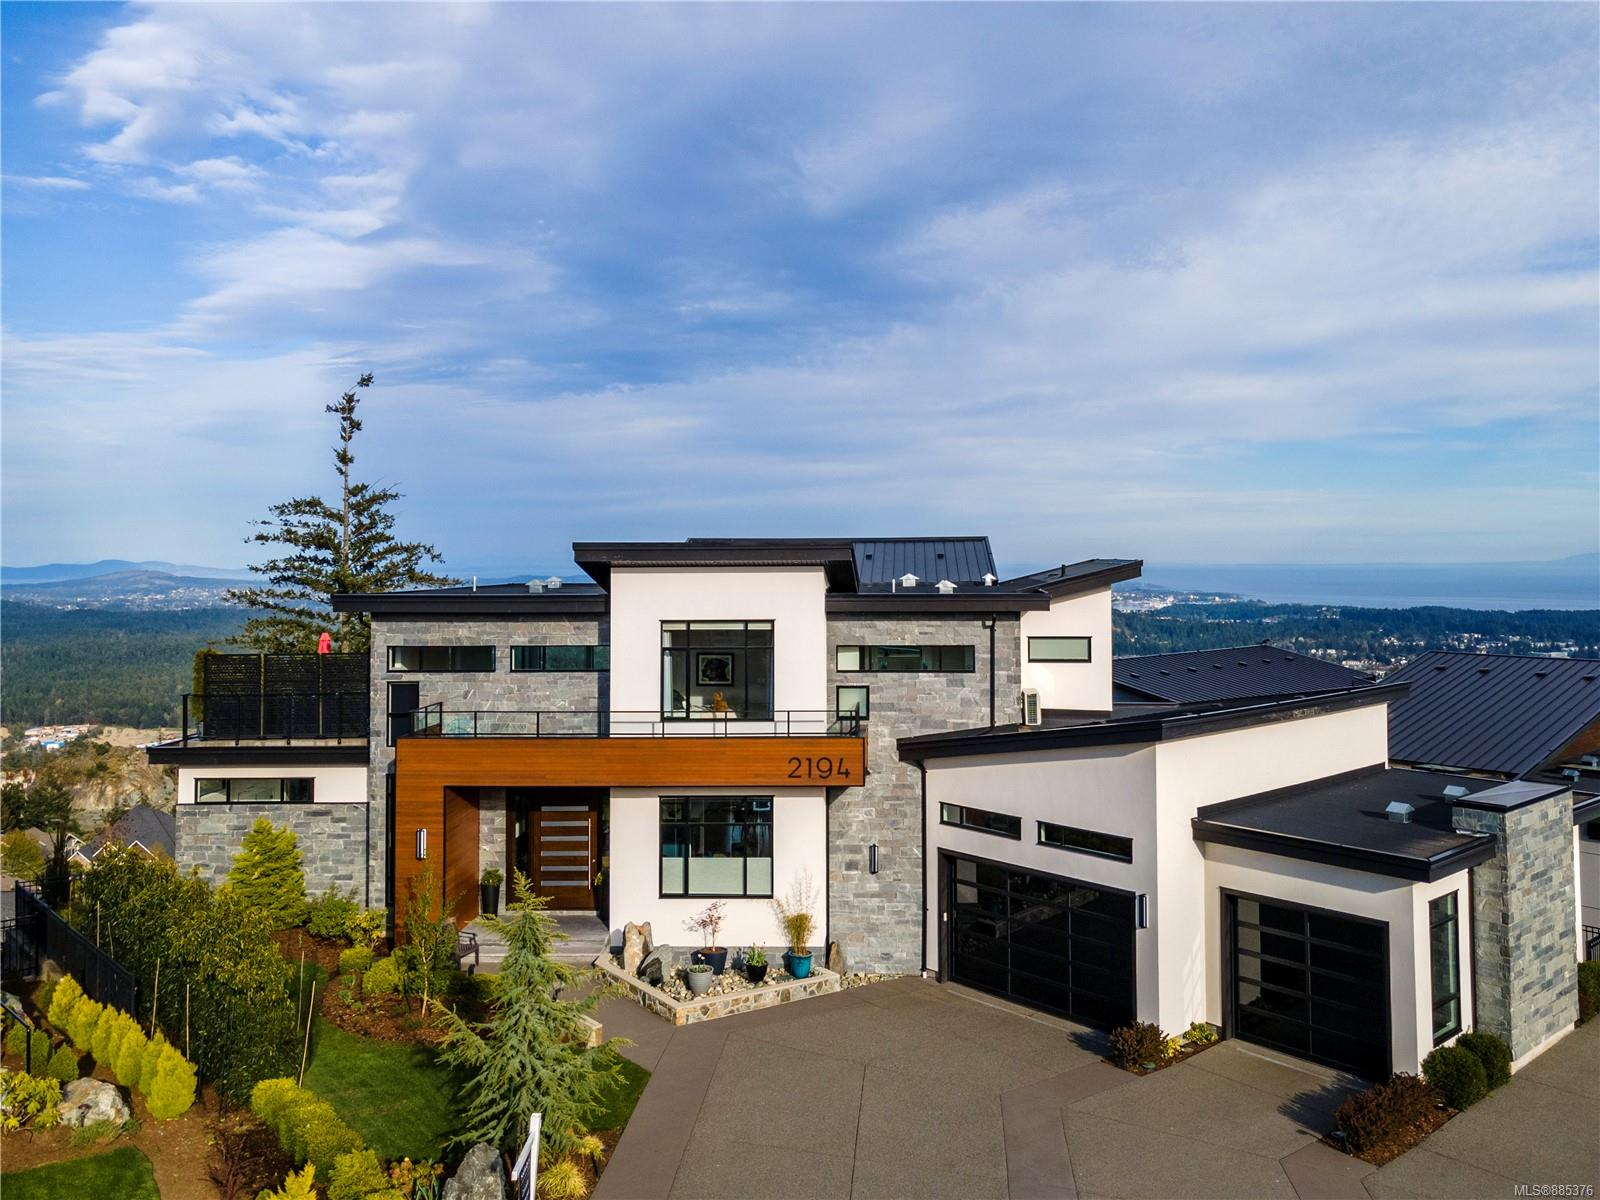 Contemporary, Custom, Pristine…this show-stopping 5BED/6BATH Bear Mountain property is situated at the end of a quiet cul-de-sac on Navigators Rise. Breathtaking 270 degree views of Juan De Fuca Strait, Peninsula & Olympic Mountains from 3 south facing decks + 2 patios. Through the oversized pivot door, you'll experience 5,600SQFT of open-concept living boasting 22' vaulted ceilings + oversized windows to elevate the scenery. Entertain in luxury from the chef's kitchen with urban cultivator, gas range & fully equipped prep kitchen. Make your way up the floating staircase to the Primary Suite with deck ft 180 degree views, separate dressing area, water closet, soaker tub & spacious walk-in shower. Lower level includes media/rec room with ample bar, wine cellar w/cooling options, 2BEDS & professionally landscaped, irrigated & solar lit yard. Additionally, 3 car garage workshop, Lutron smart blinds, RV/Boat pad, security system & MUCH more. Experience this impressive dream home yourself!